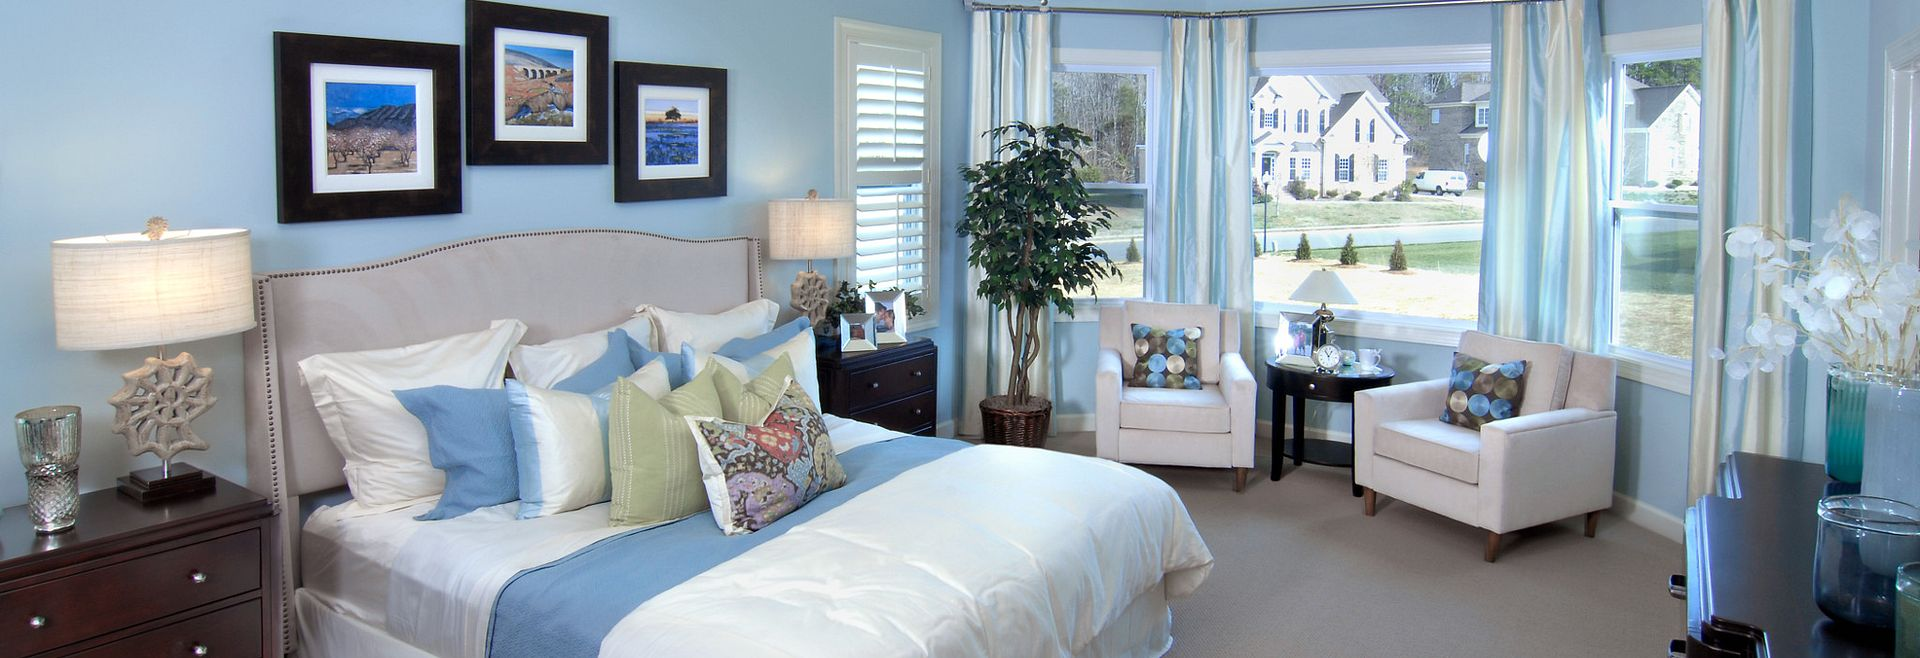 master bedroom with tray ceiling and sitting area